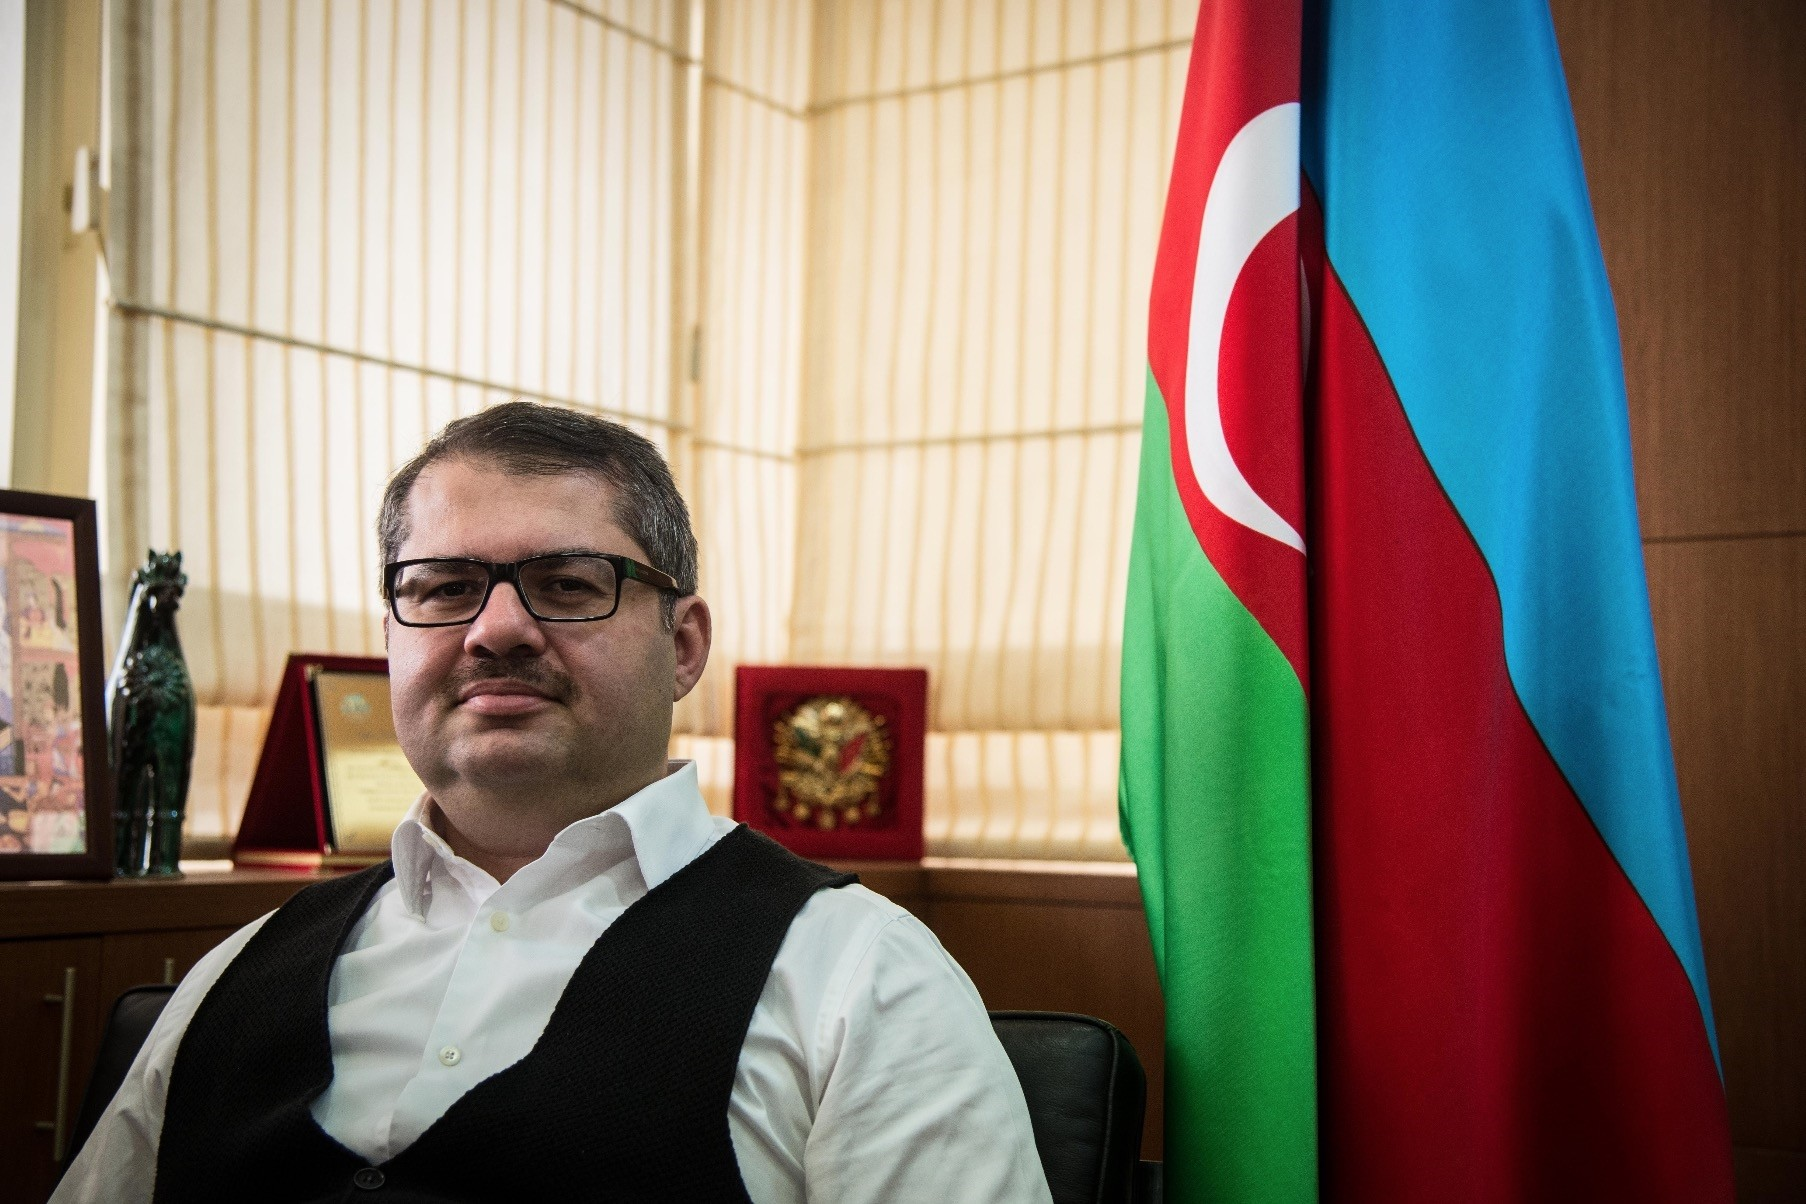 Azerbaijani Ambassador Khazar u0130brahim said he is proud of the collaboration between Ankara and Baku and believes there are no other examples of such close cooperation in the world.